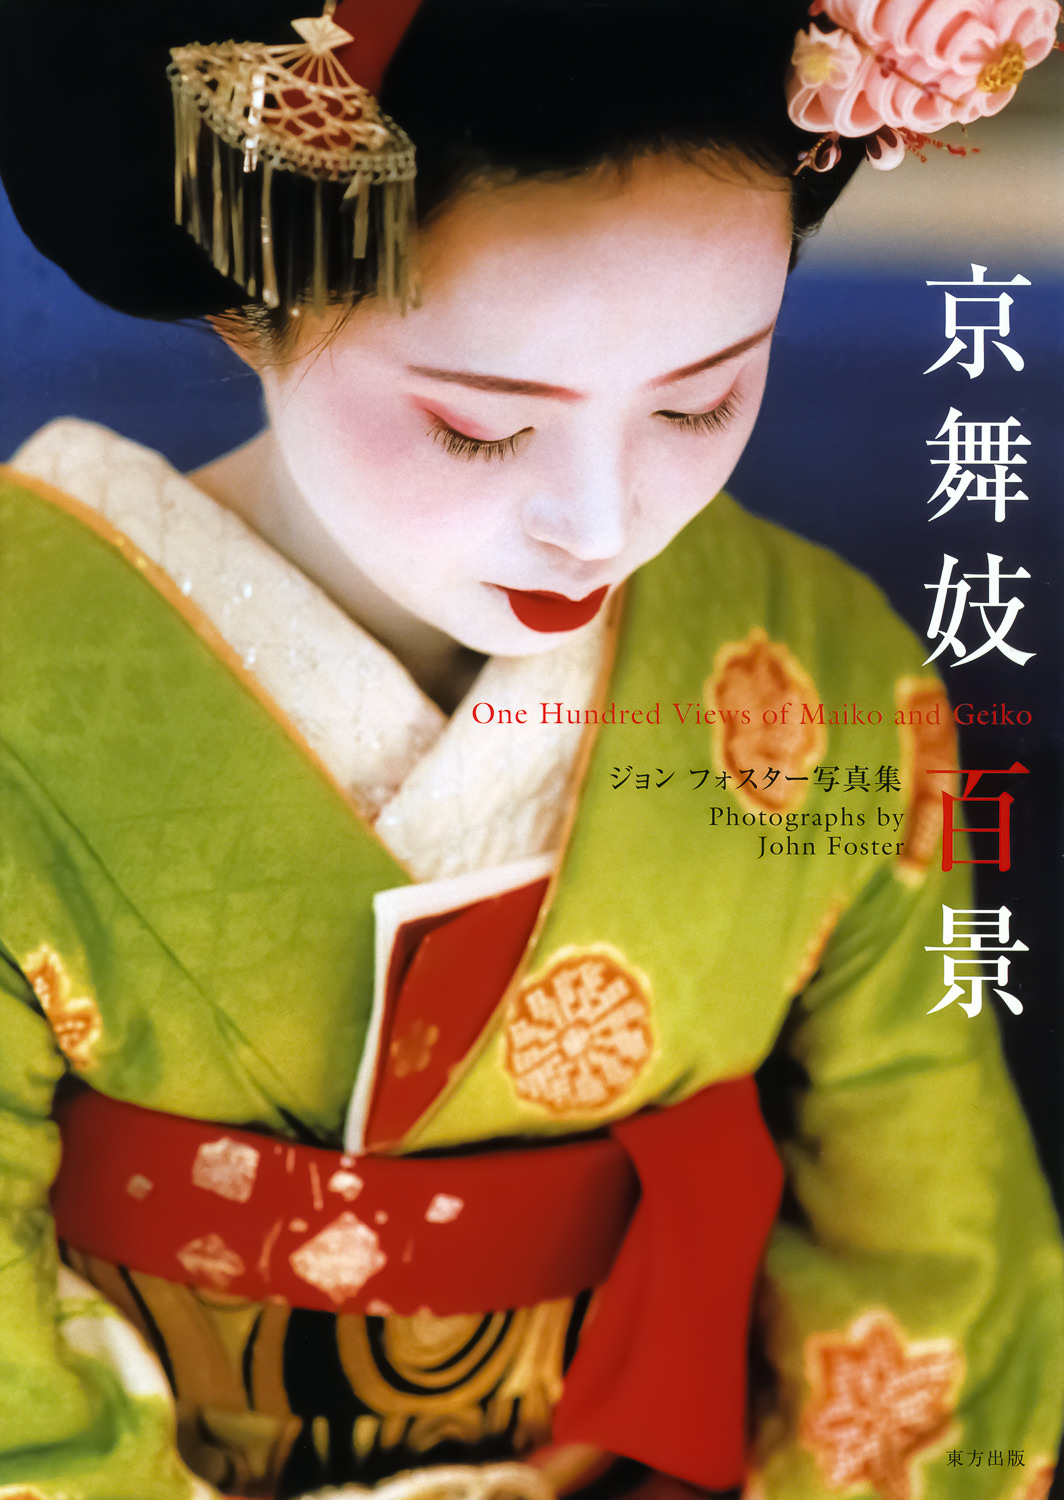 100-Views-Maiko-Geiko-Cover.jpg